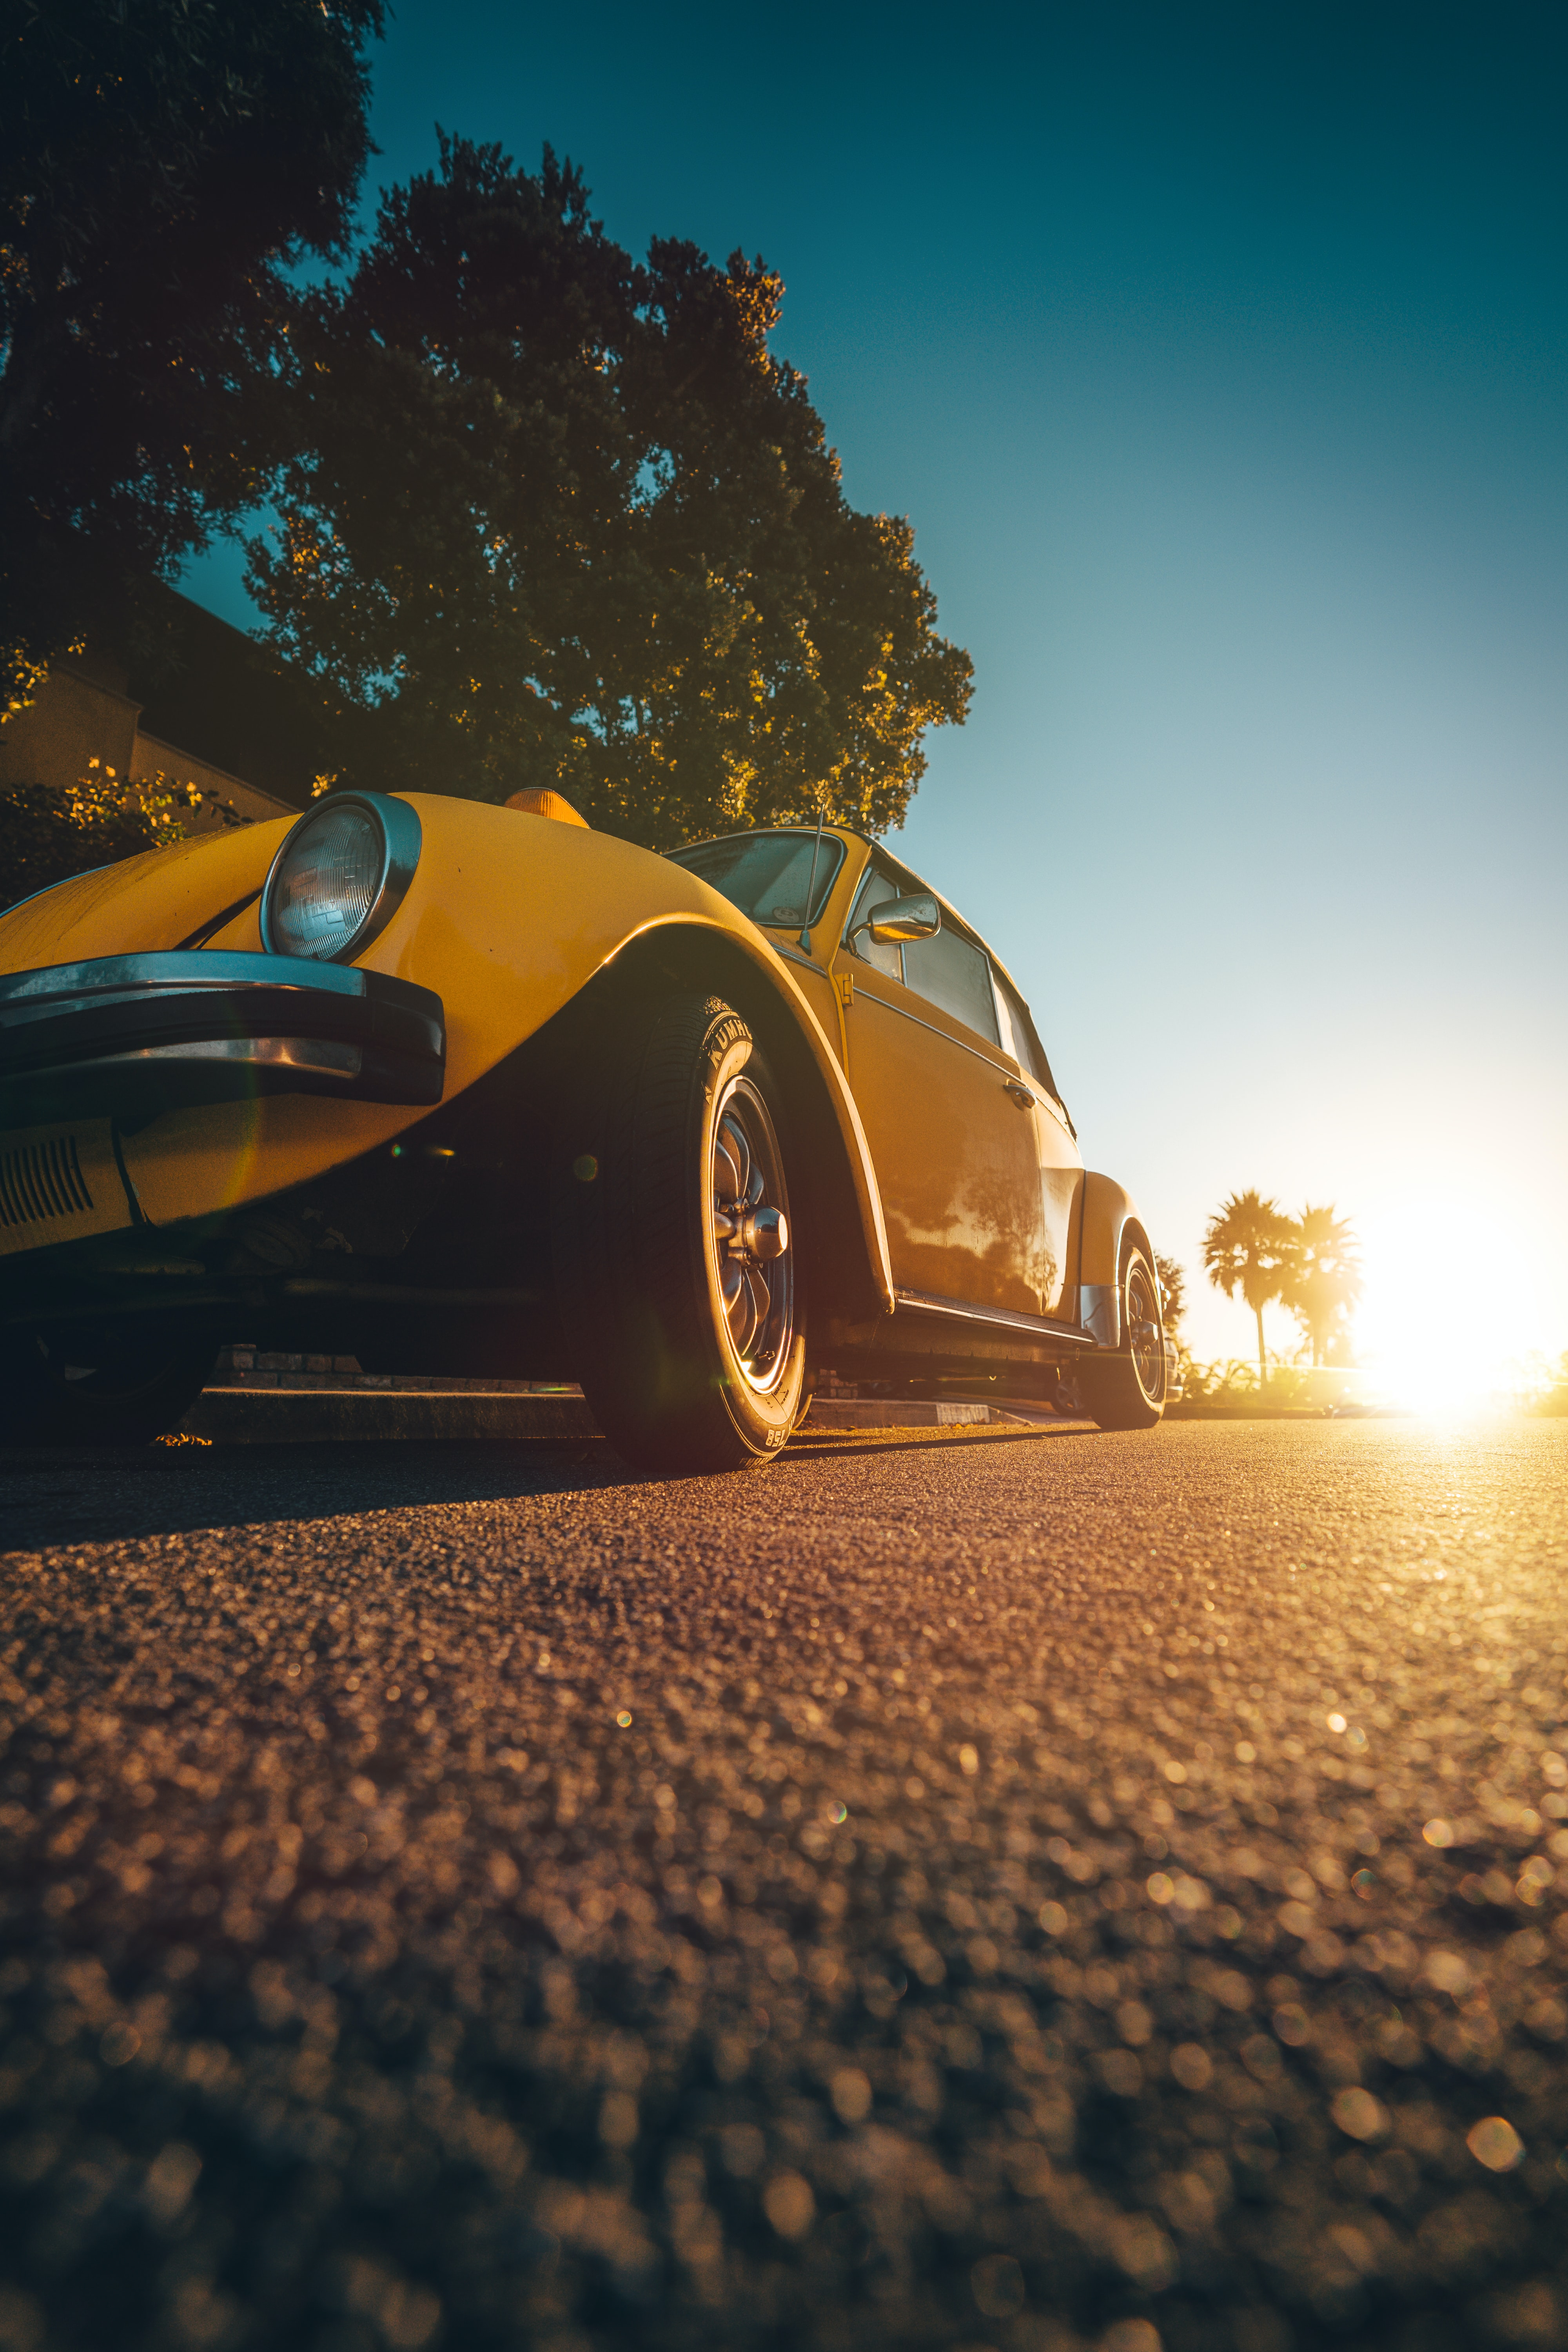 yellow Volkswagen Beetle coupe during golden hour